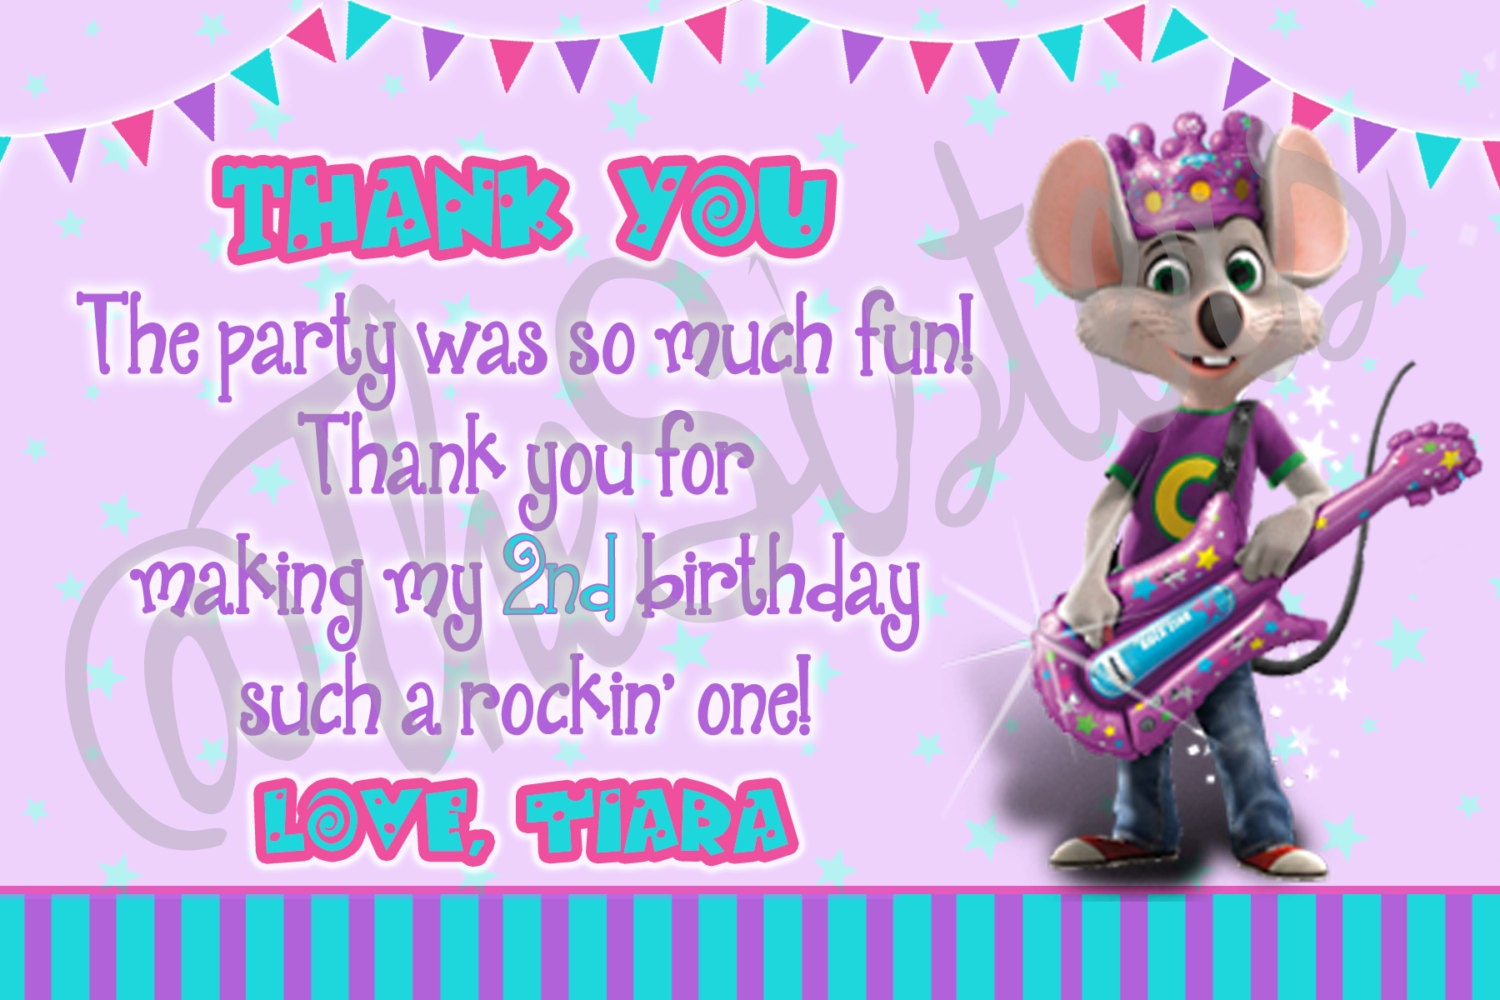 Chuck e cheese thank you card girl birthday party kristyandbryce Image collections